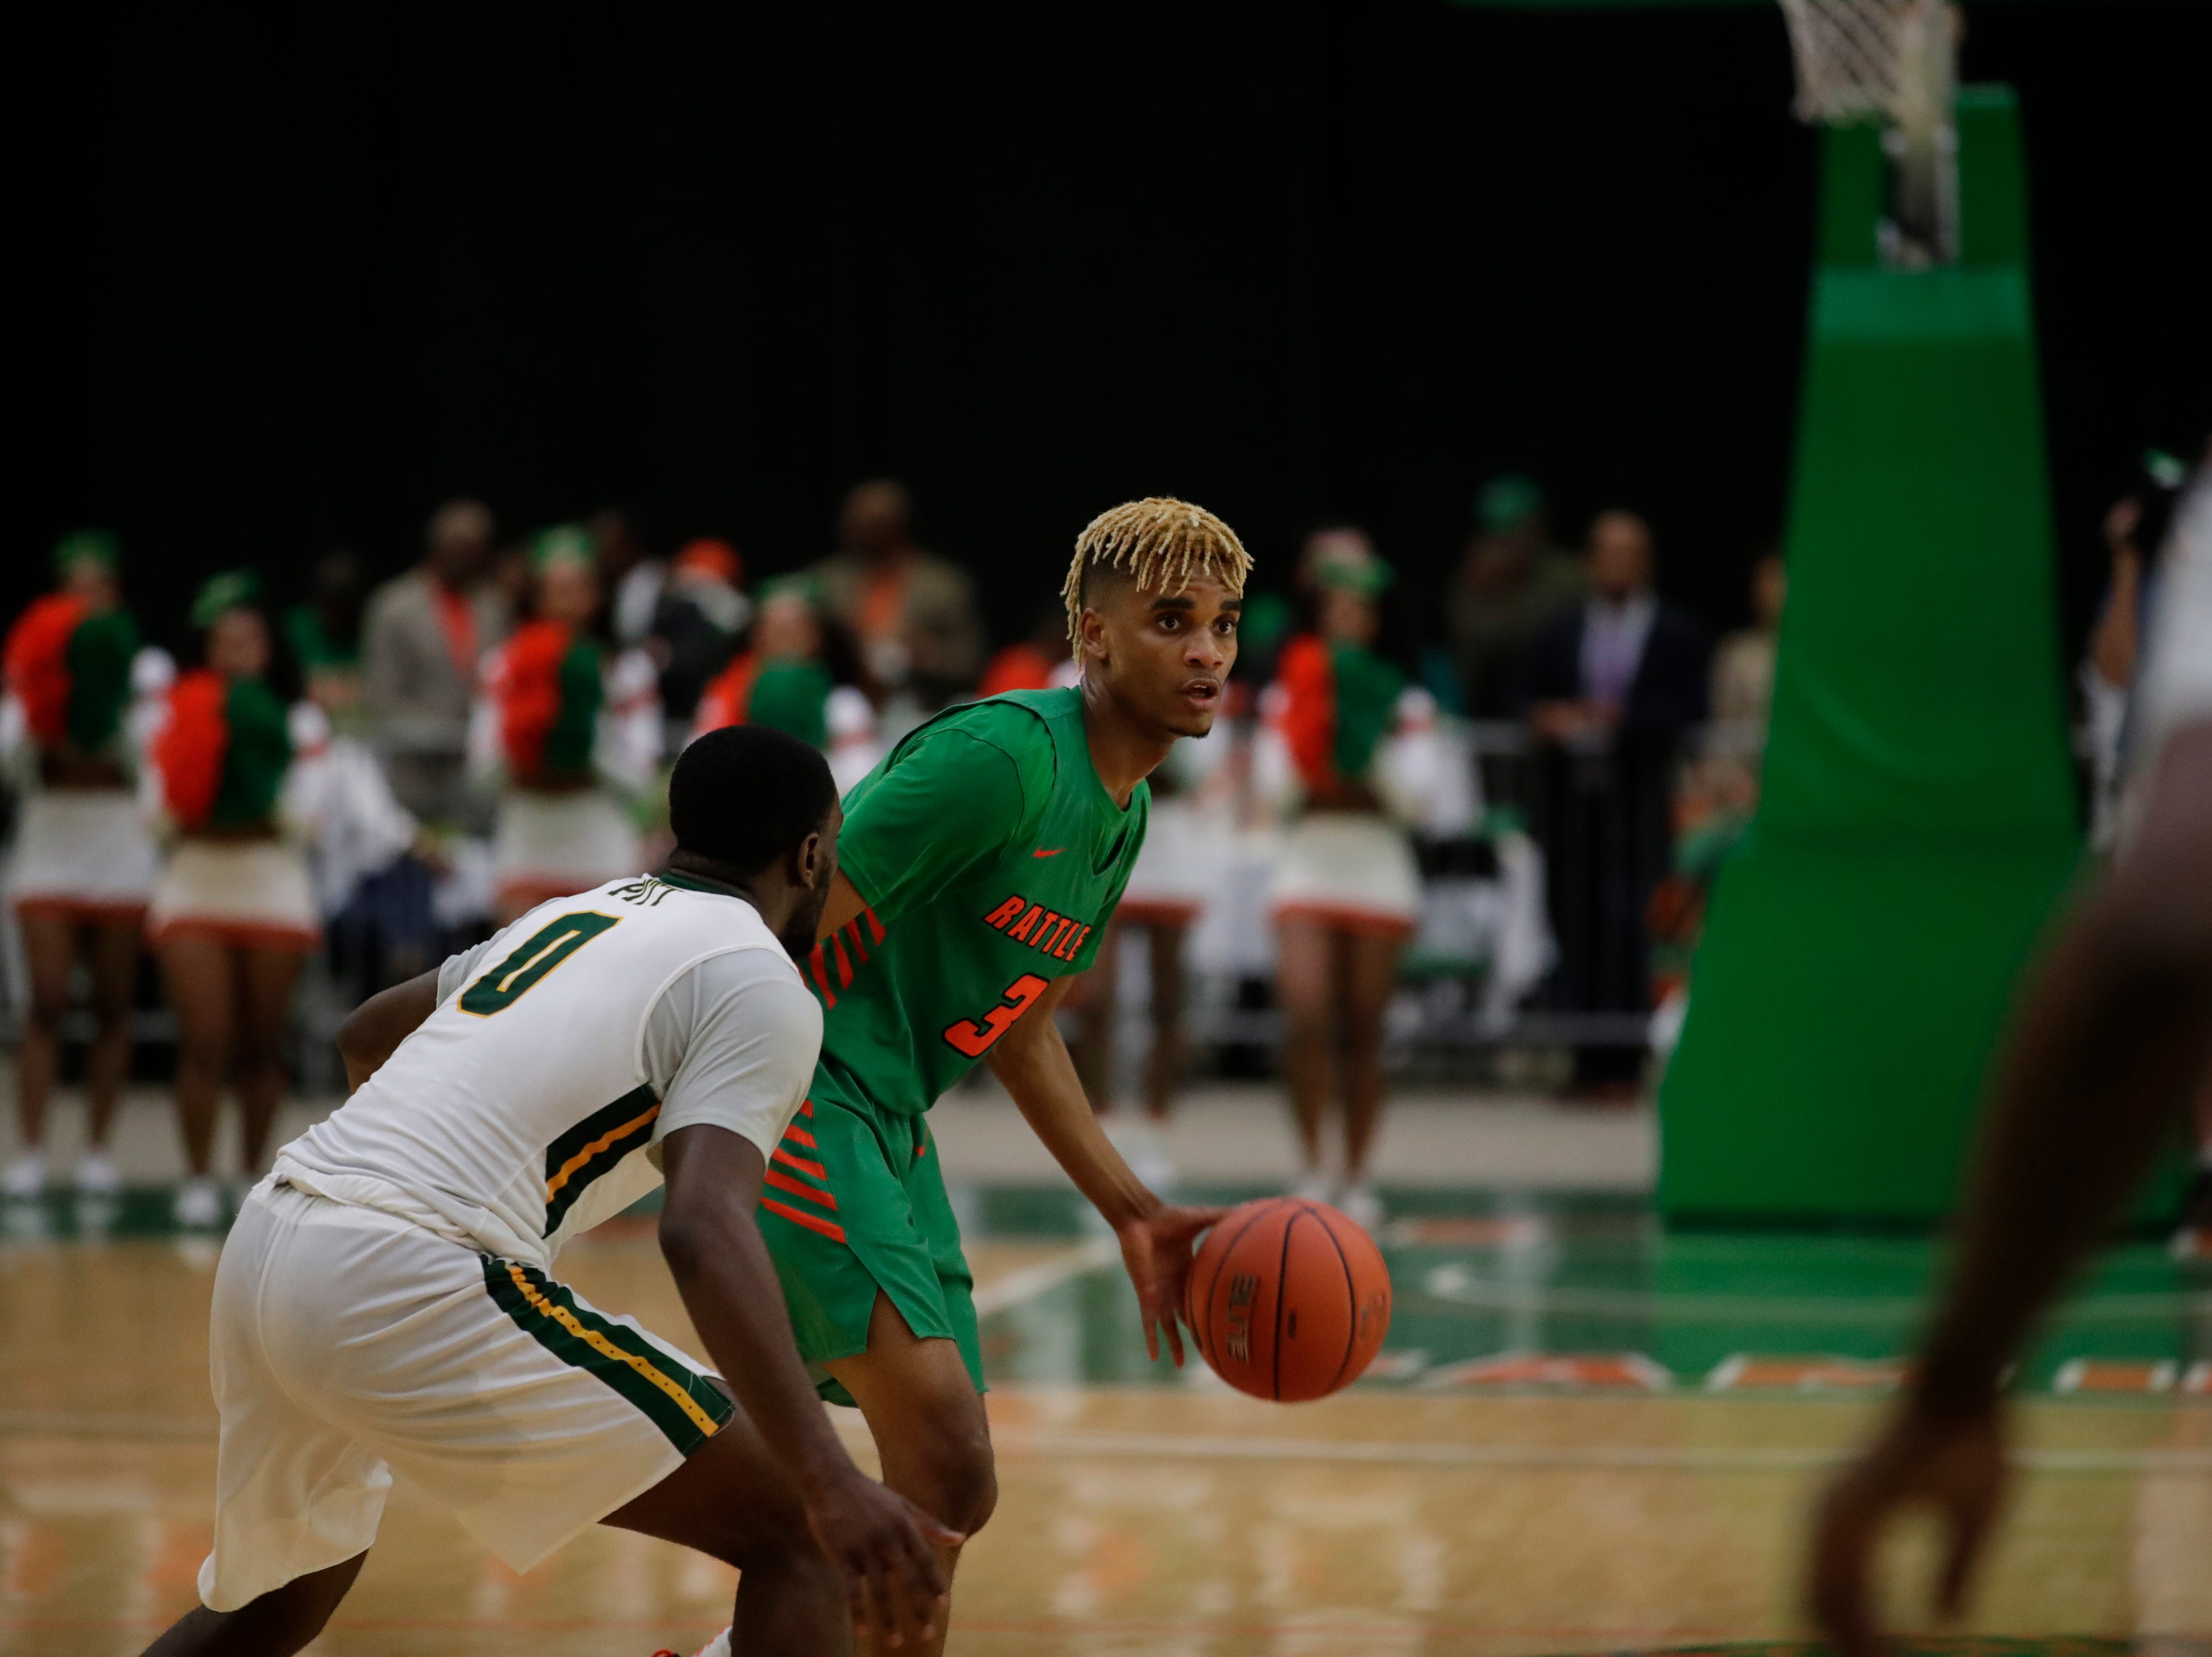 FAMU's M.J. Randolph had 9 points against Norfolk State at the Alfred Lawson Jr. Multipurpose Center Monday, Feb. 11, 2019.